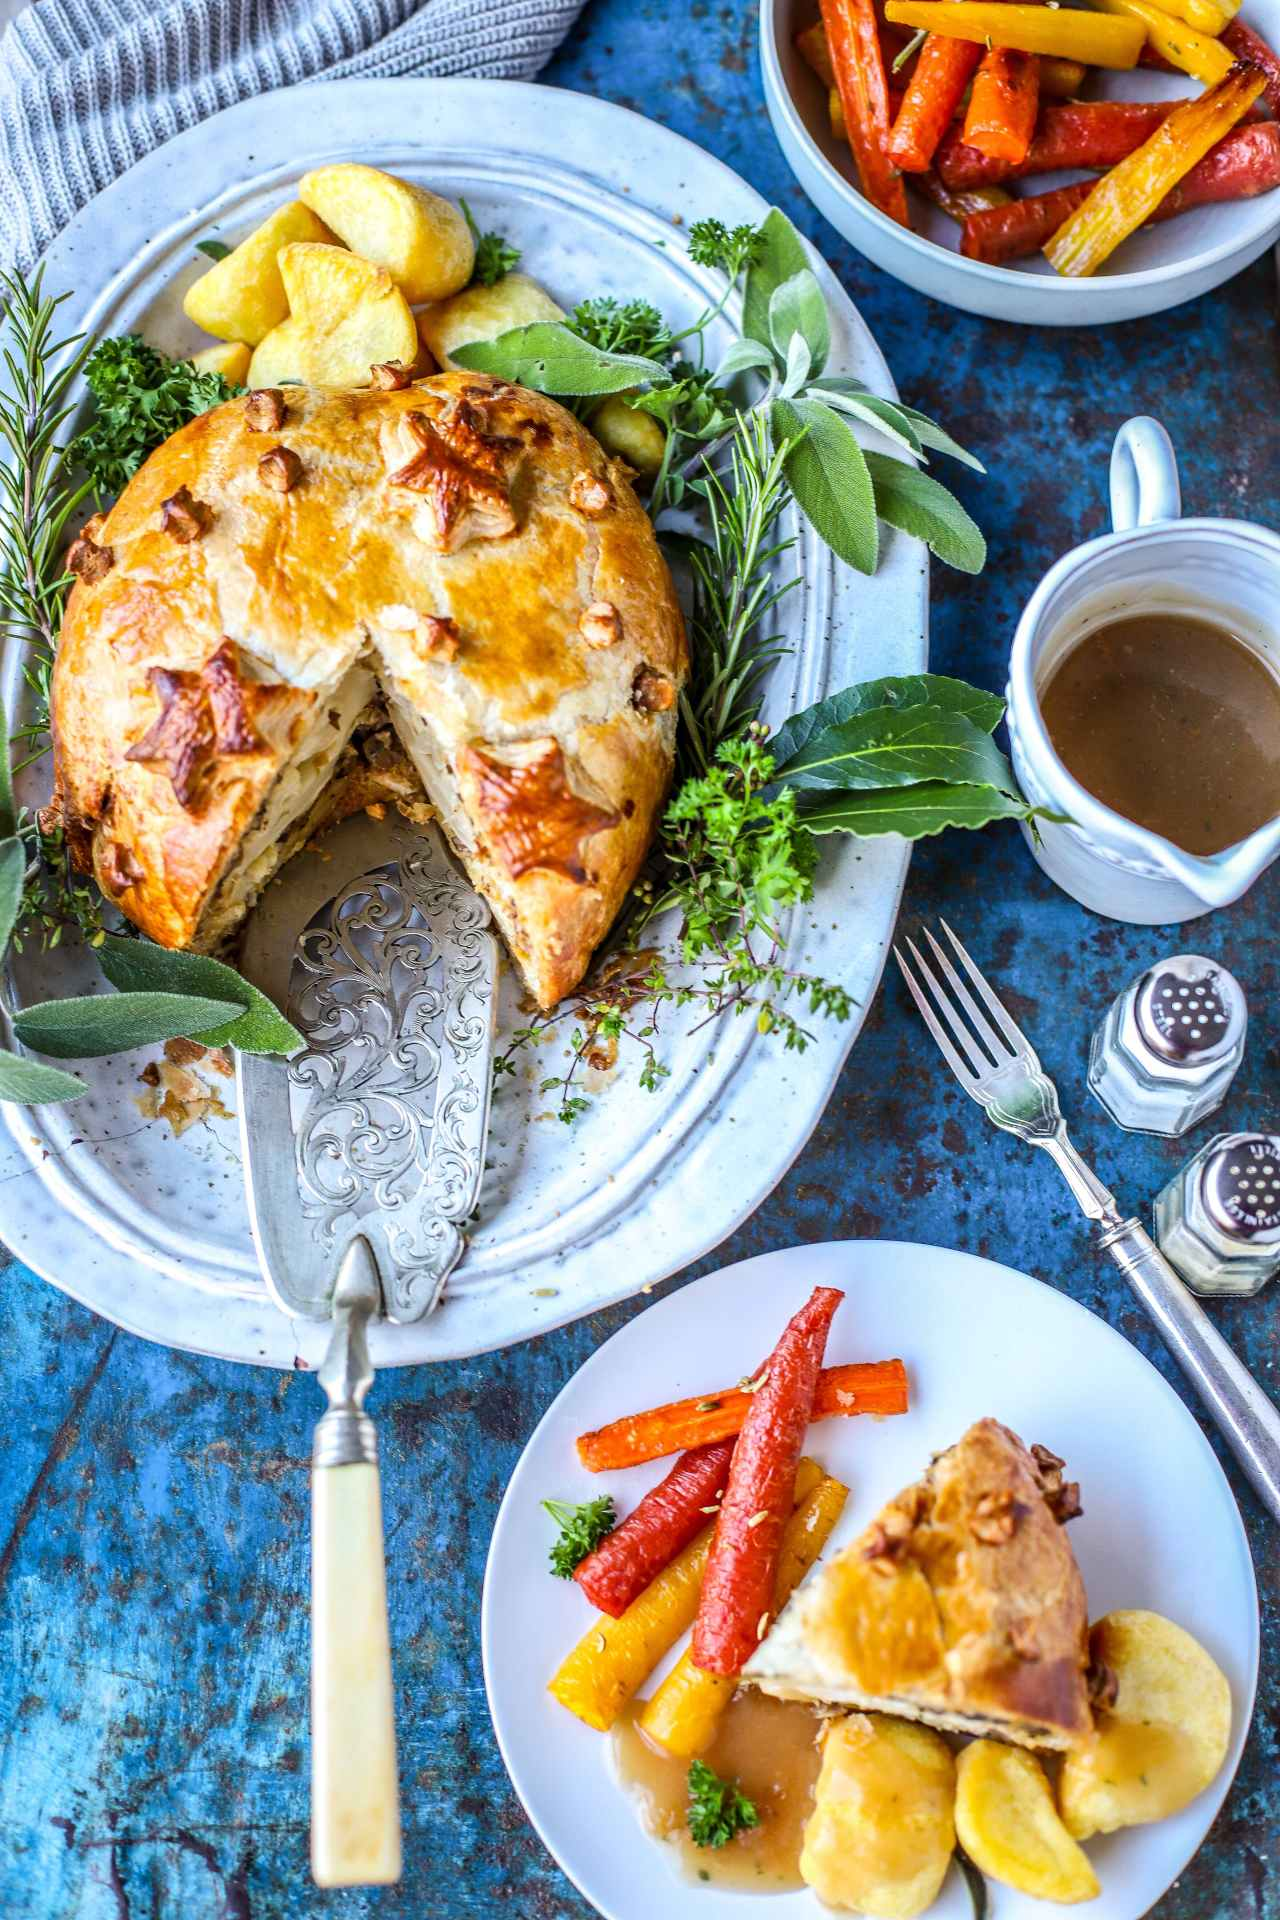 Cauliflower and Porcini Mushroom Wellington is the ultimate vegetarian centrepiece dinner recipe. Easy to prepare, and goes with all of the usual roast dinner trimmings. #Christmasfood #recipe #cauliflower #vegetarian #easilyvegan #pastry #dinner #familyfood